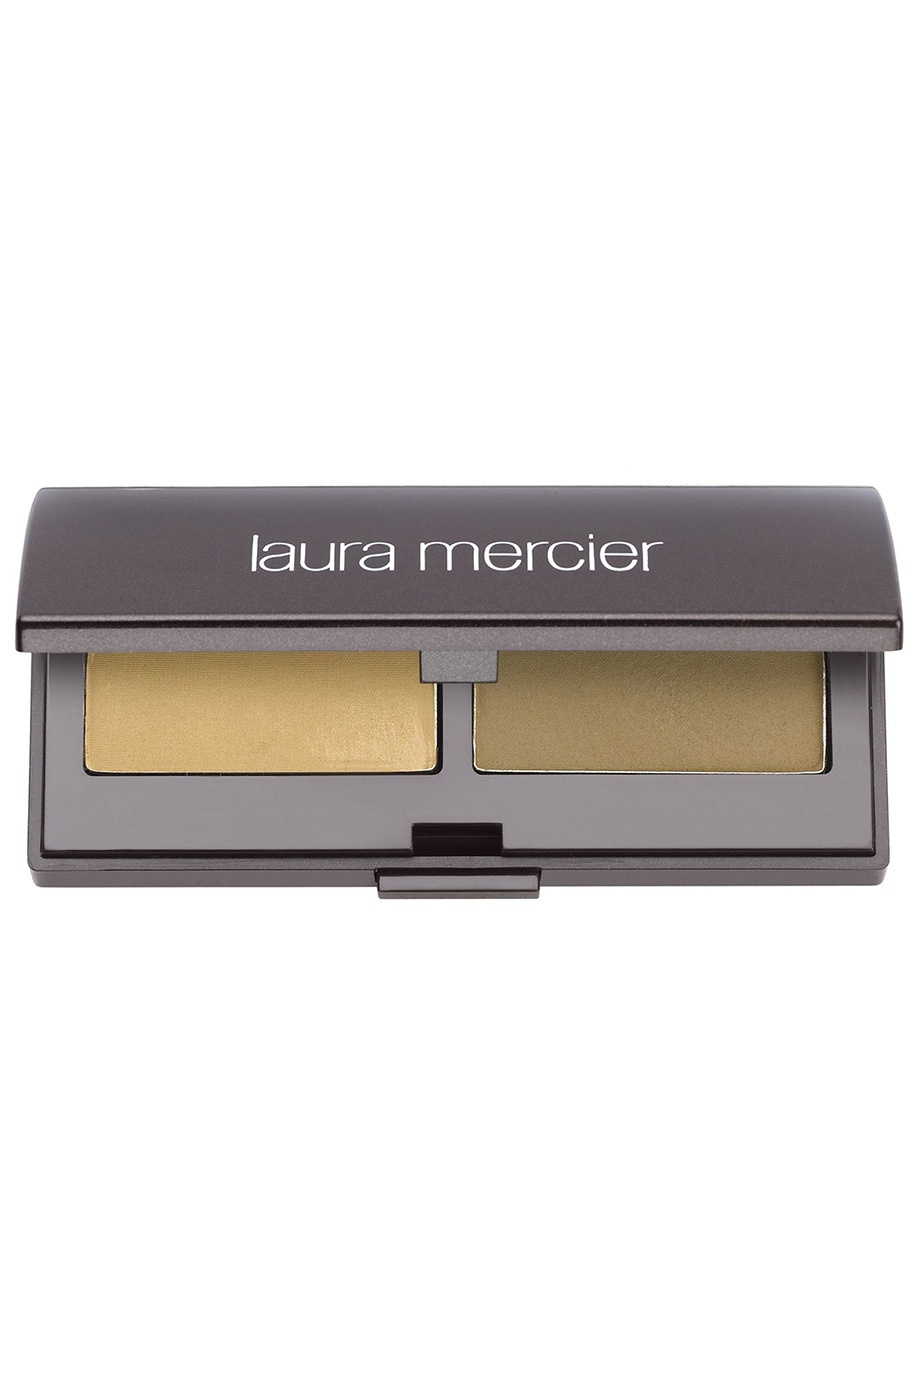 Тени для бровей Brow Powder Duo Soft Blonde Laura Mercier (фото)